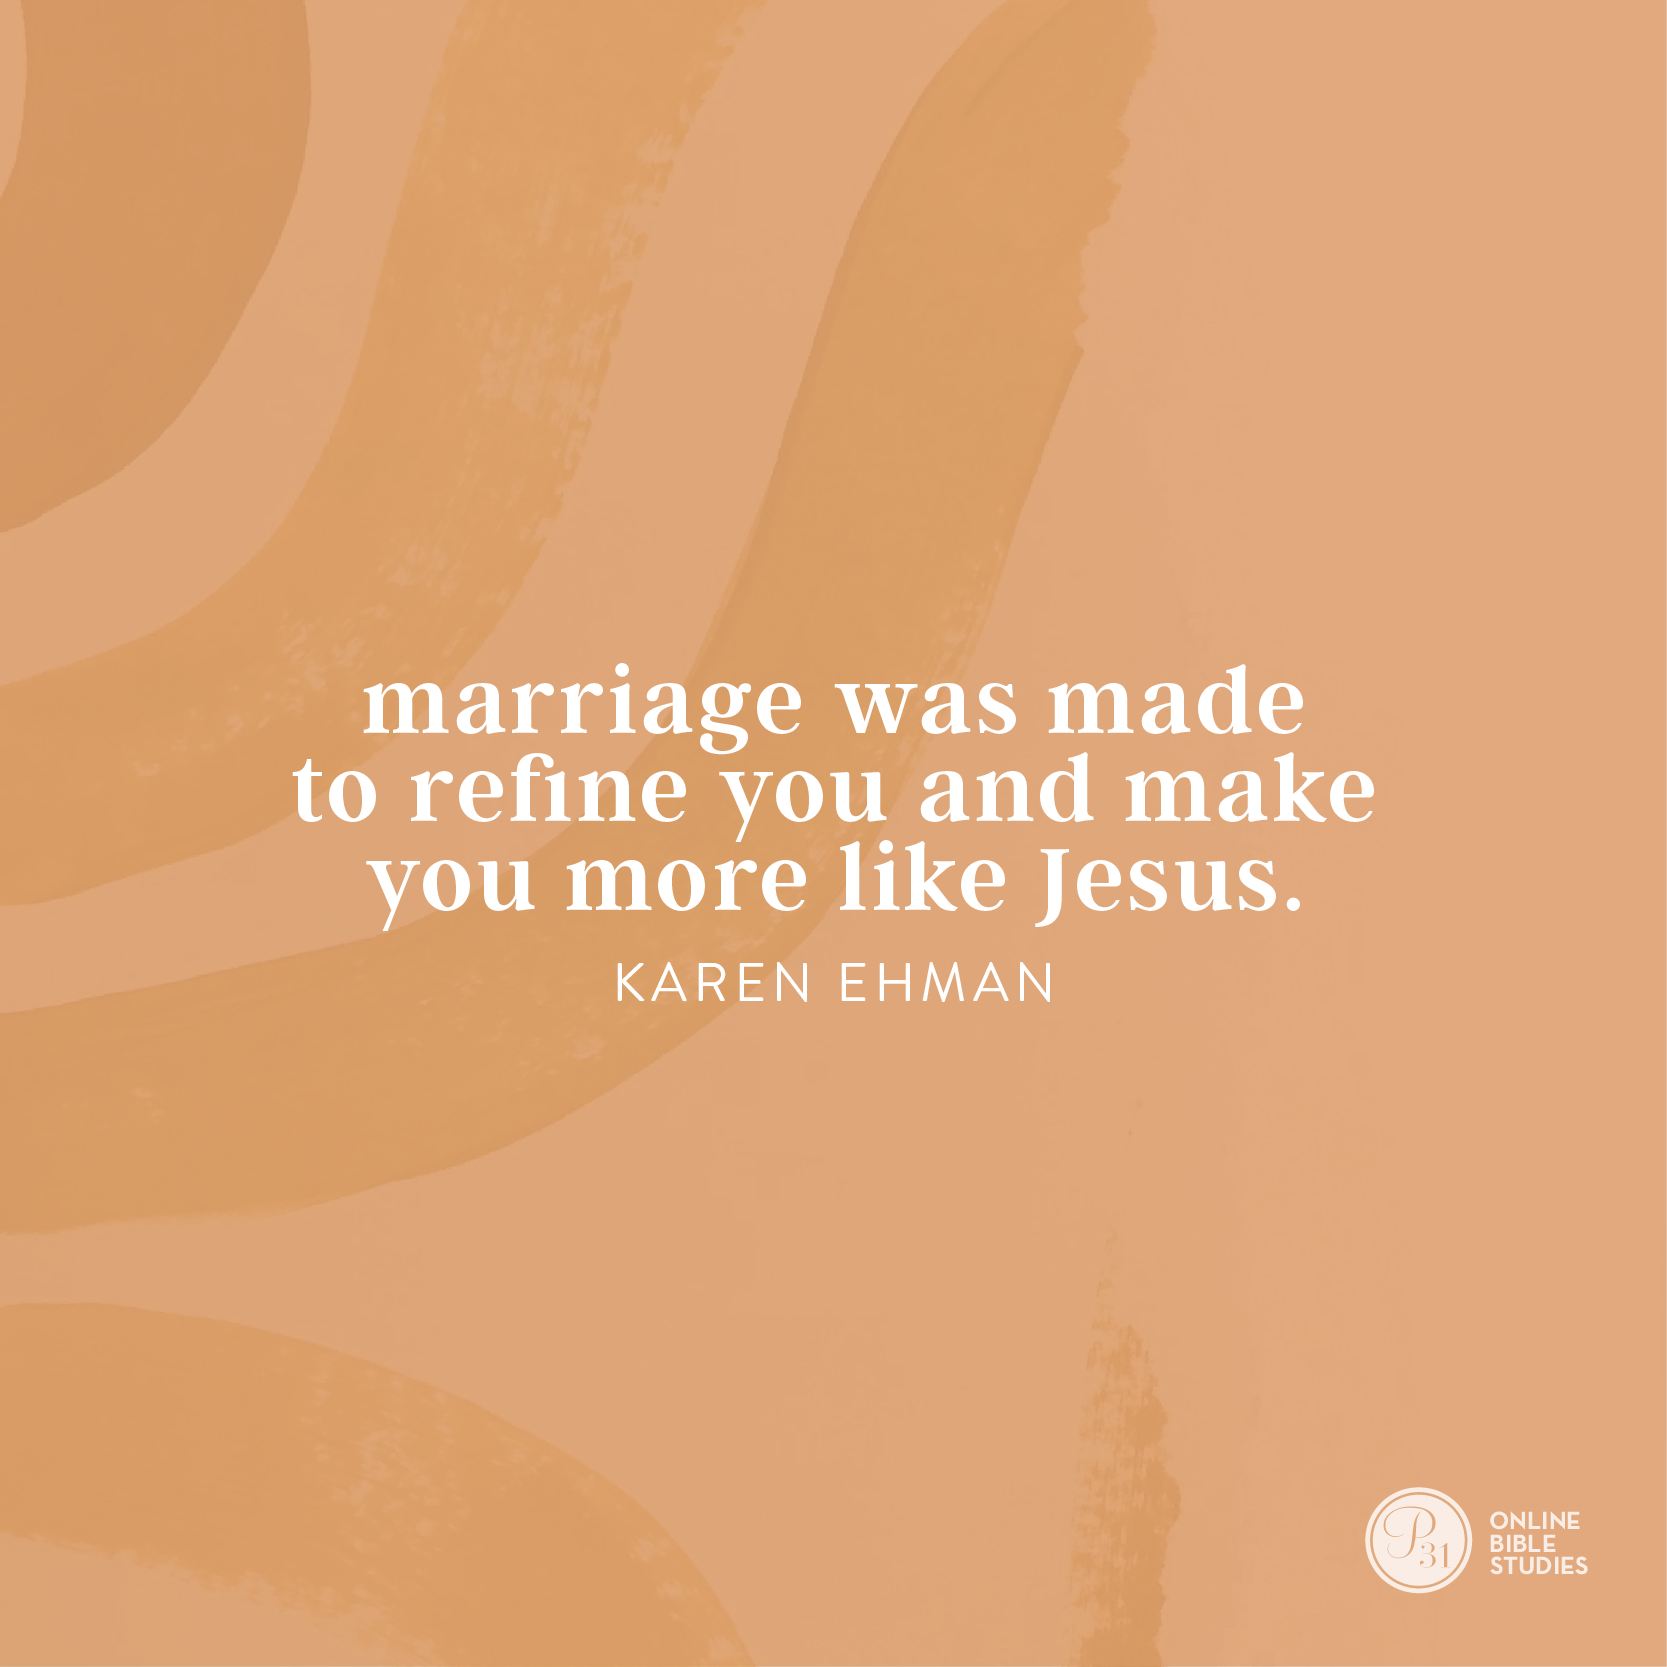 """""""Marriage was made to refine you and make you more like Jesus."""" - Karen Ehman  #KeepShowingUpBook   Proverbs 31 Online Bible Studies Week 1 #P31OBS"""